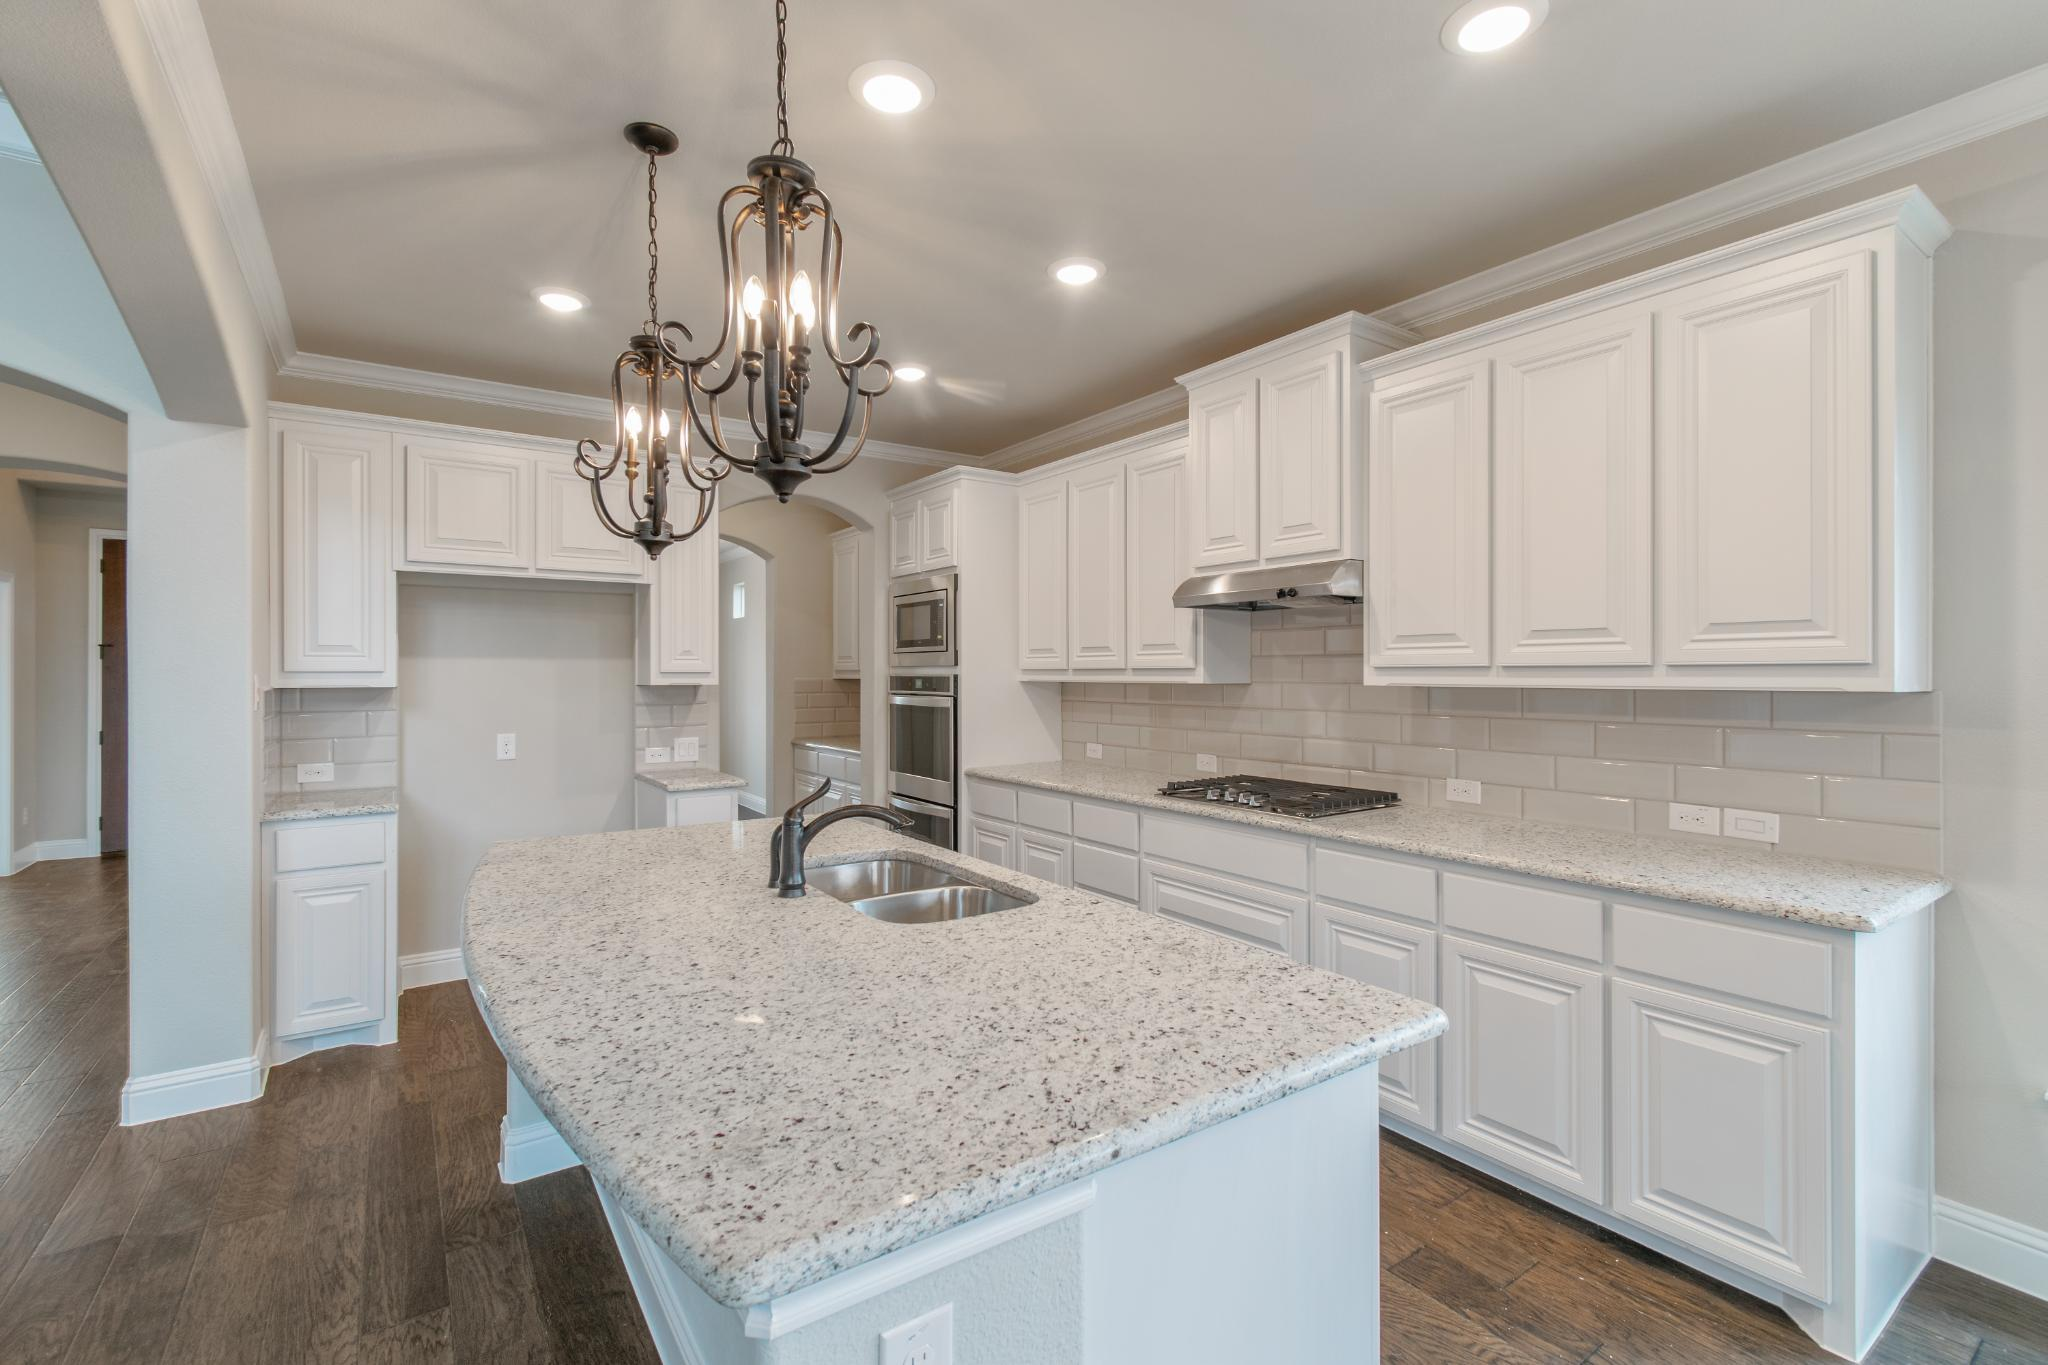 Kitchen featured in the 3135 By Antares Homes in Dallas, TX